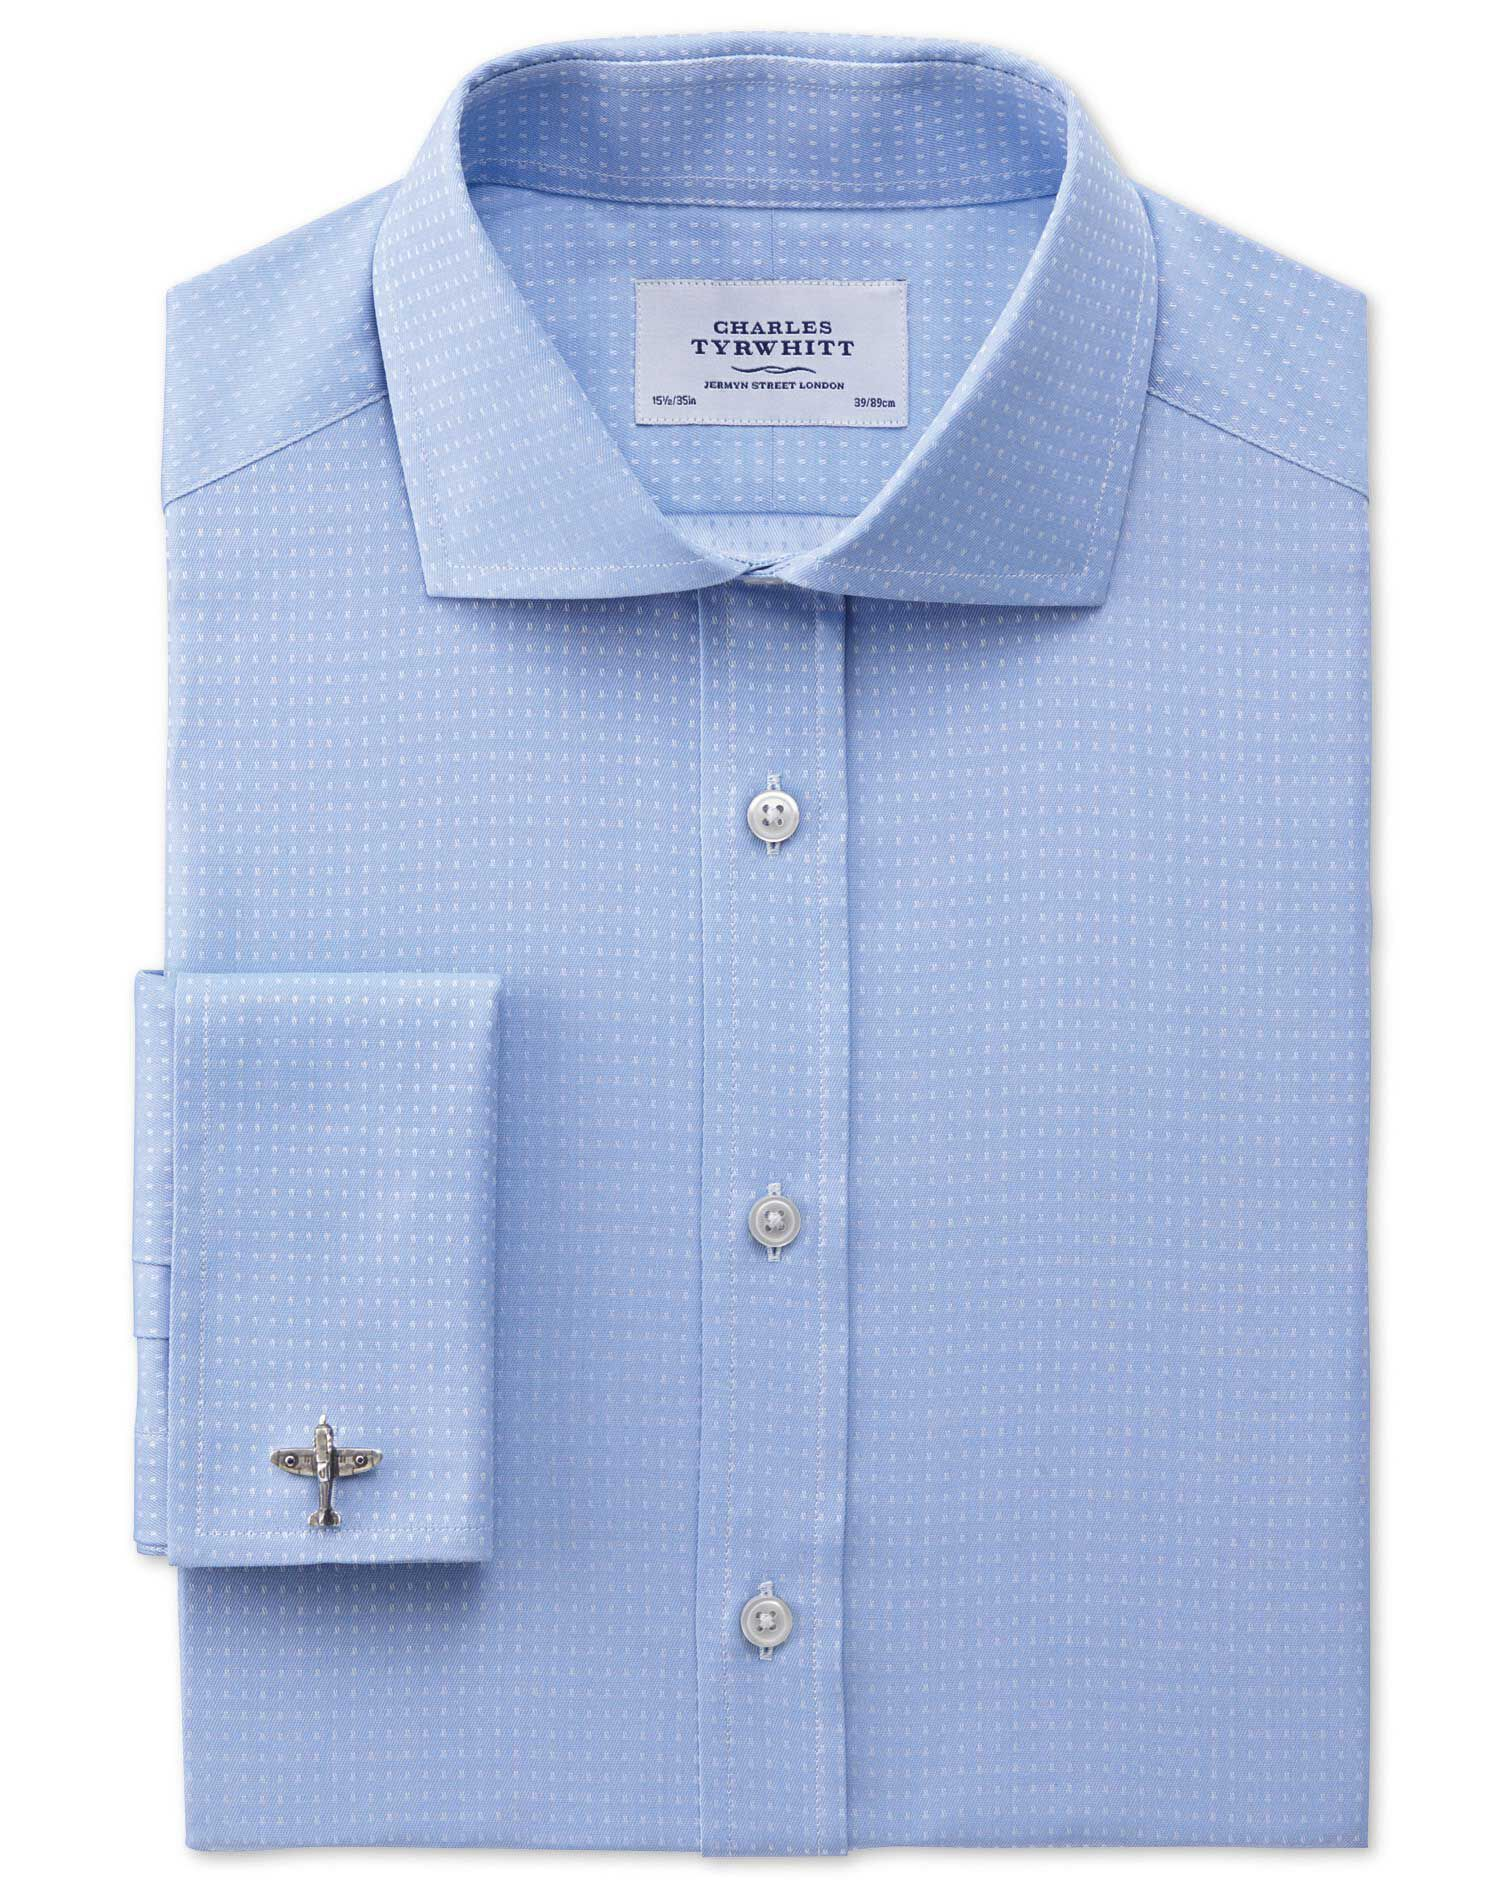 Extra Slim Fit Cutaway Collar Egyptian Cotton Textured Dobby Sky Blue Formal Shirt Double Cuff Size